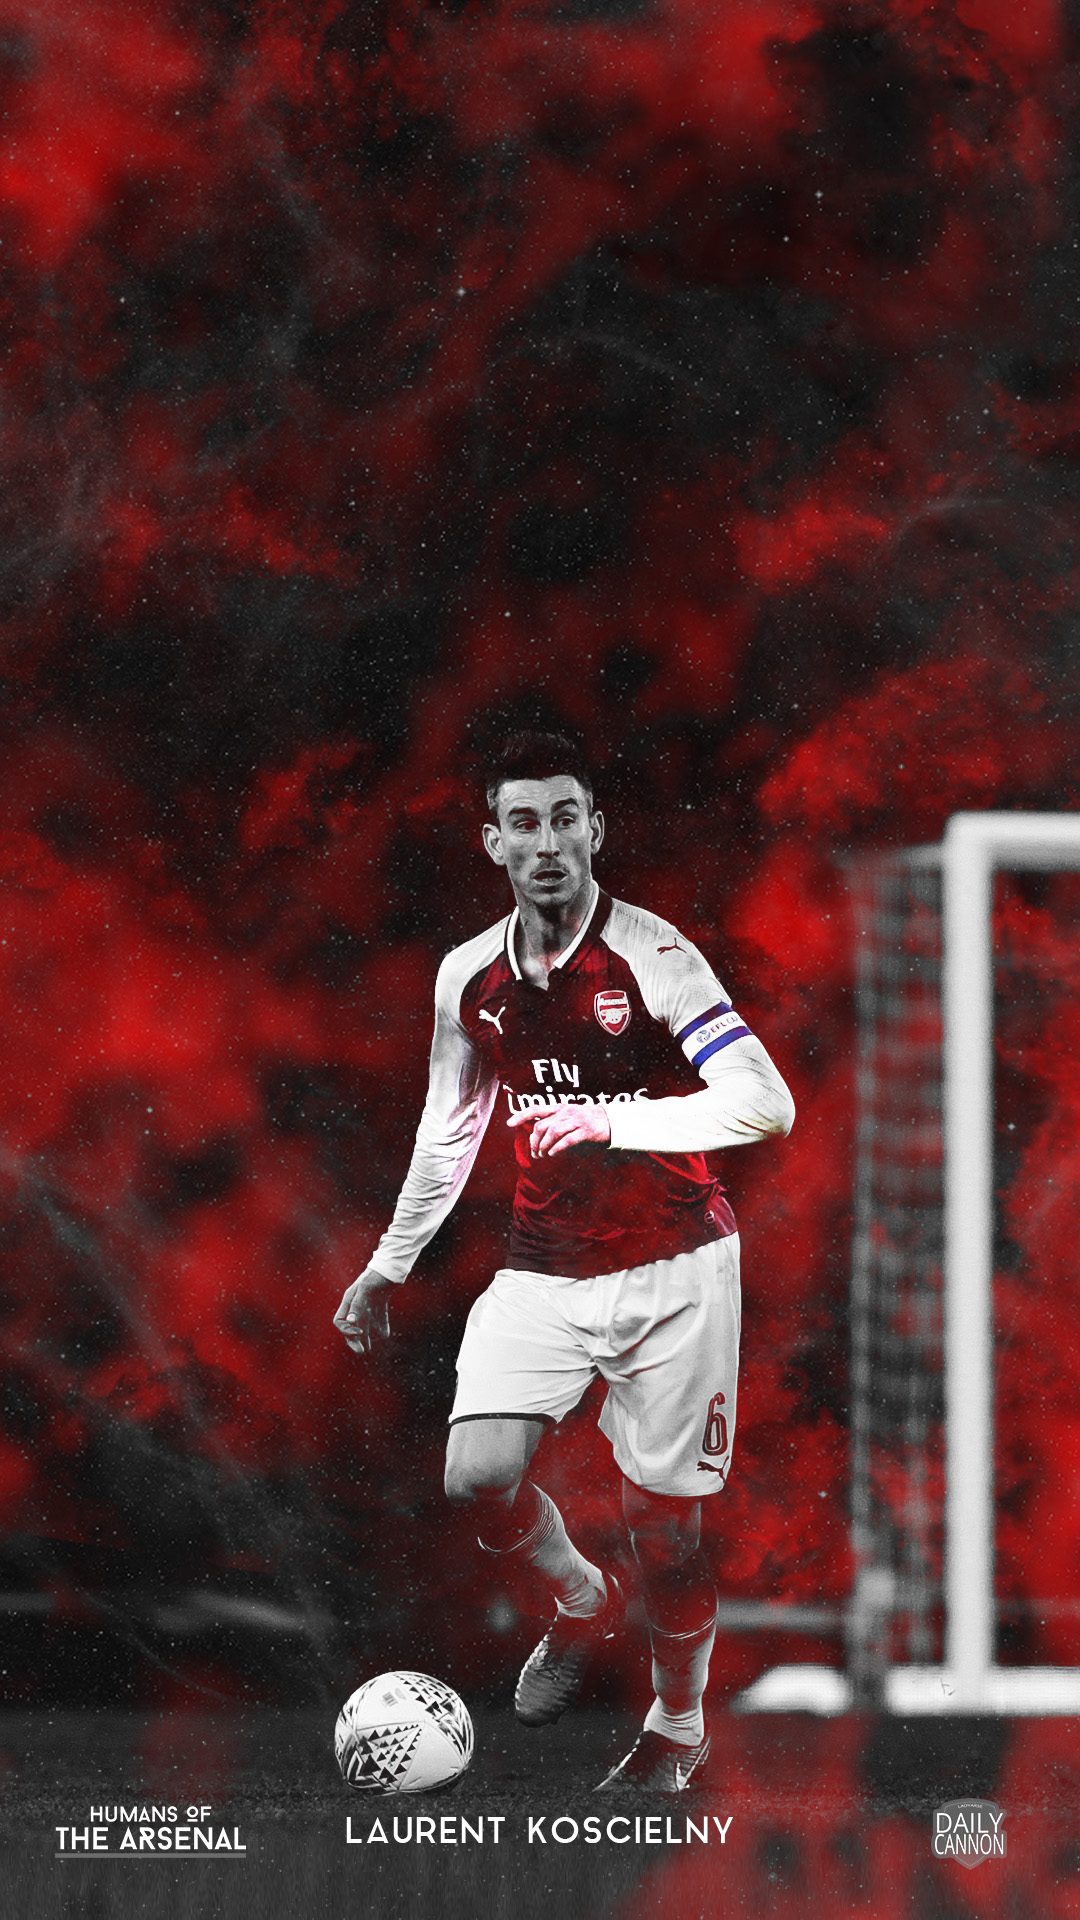 Amazing Arsenal Phone Wallpaper Collaboration With Humans Of The Arsenal New Signings Bonus Daily Cannon